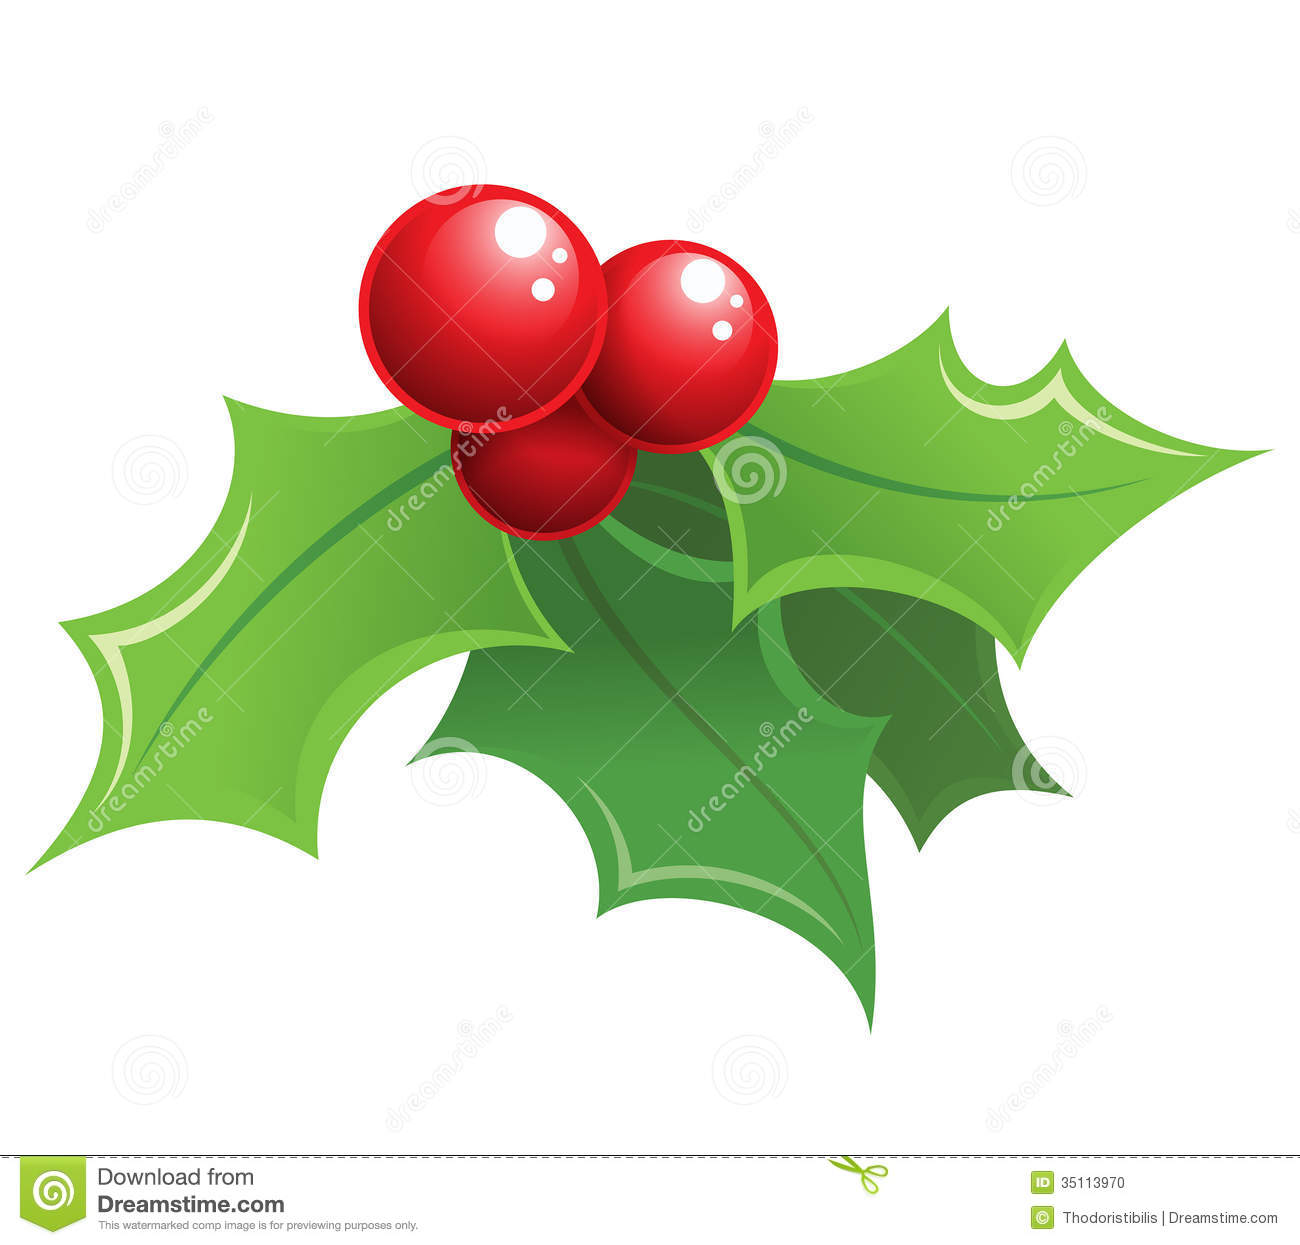 Holly christmas ornaments - Cartoon Shiny Christmas Holly Decorative Ornament